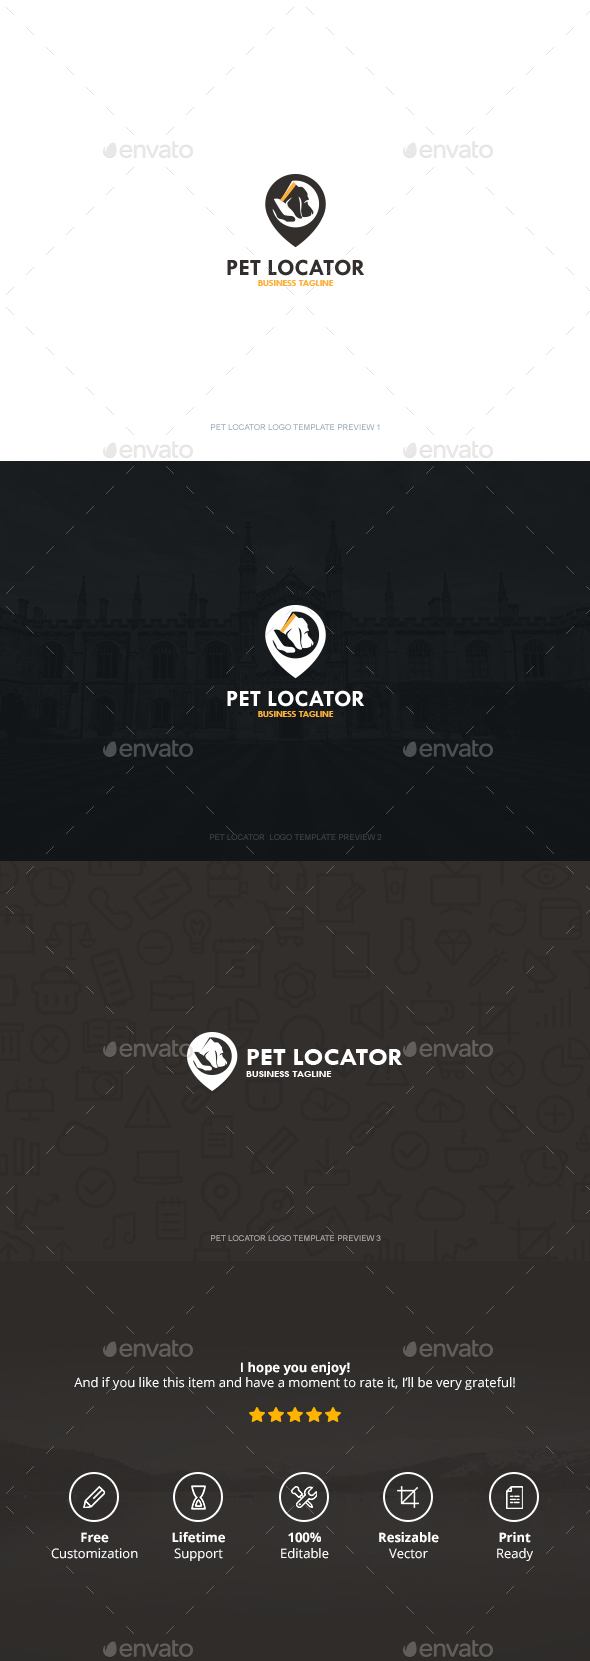 Pet Locator Logo